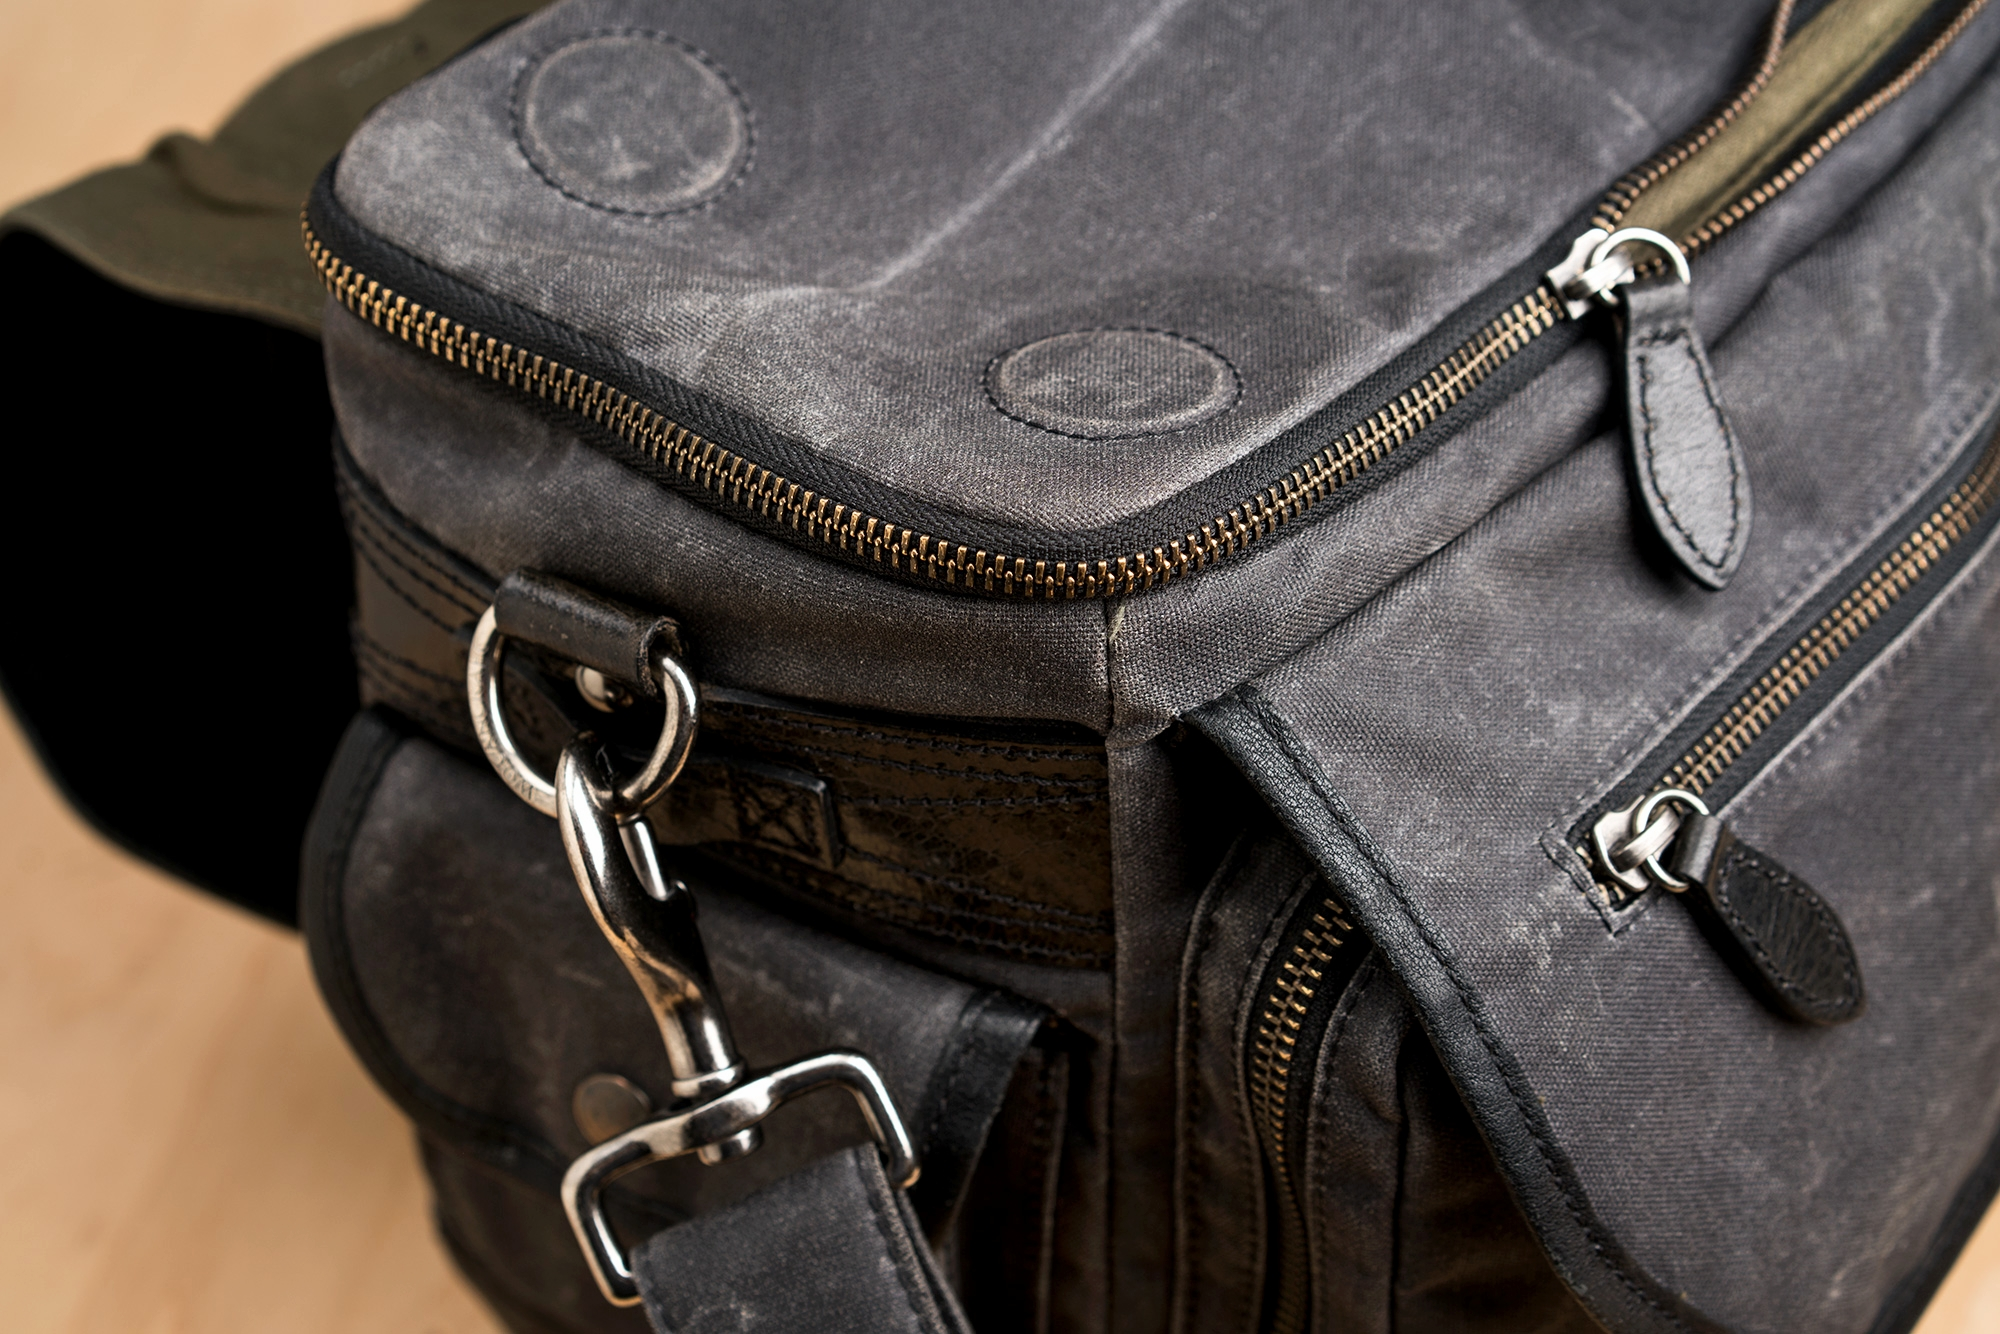 Wotancraft's innovative magnet system, bronze  YKK  zippers, heavy duty metal hardware and leather zipper pulls. Bespoke.